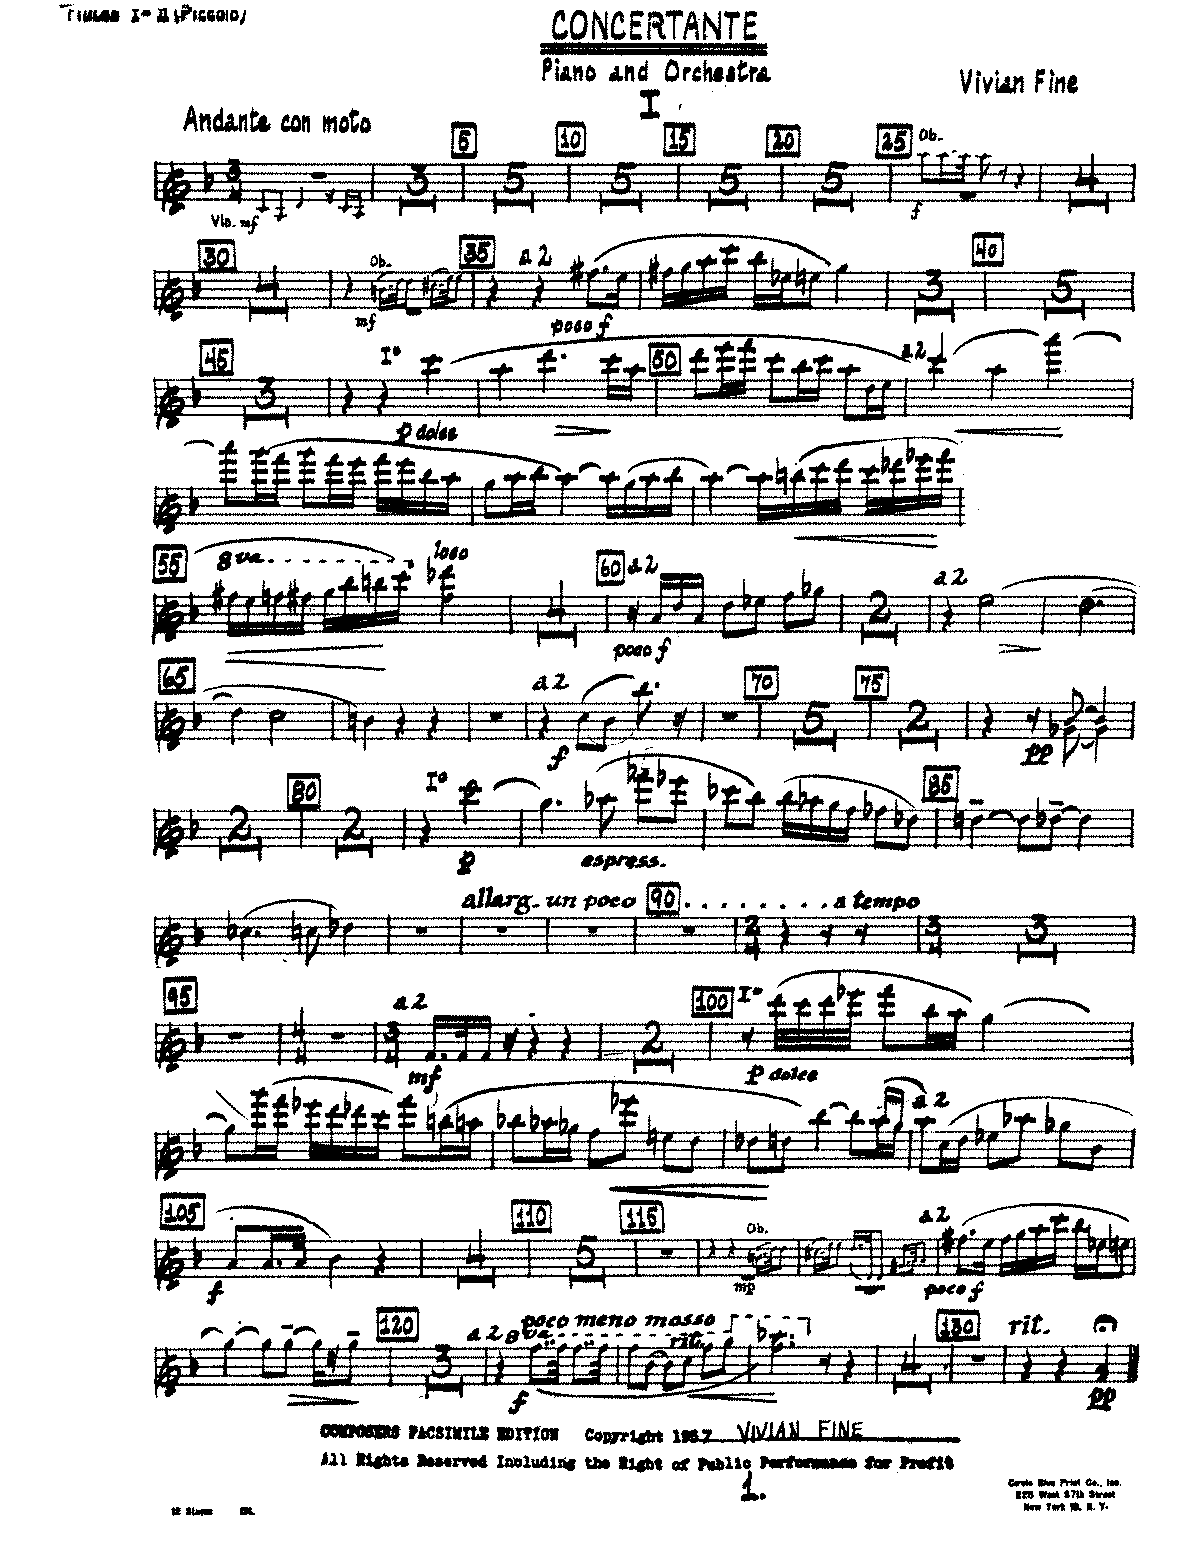 PMLP337655-Concertante Winds and Timpani.pdf